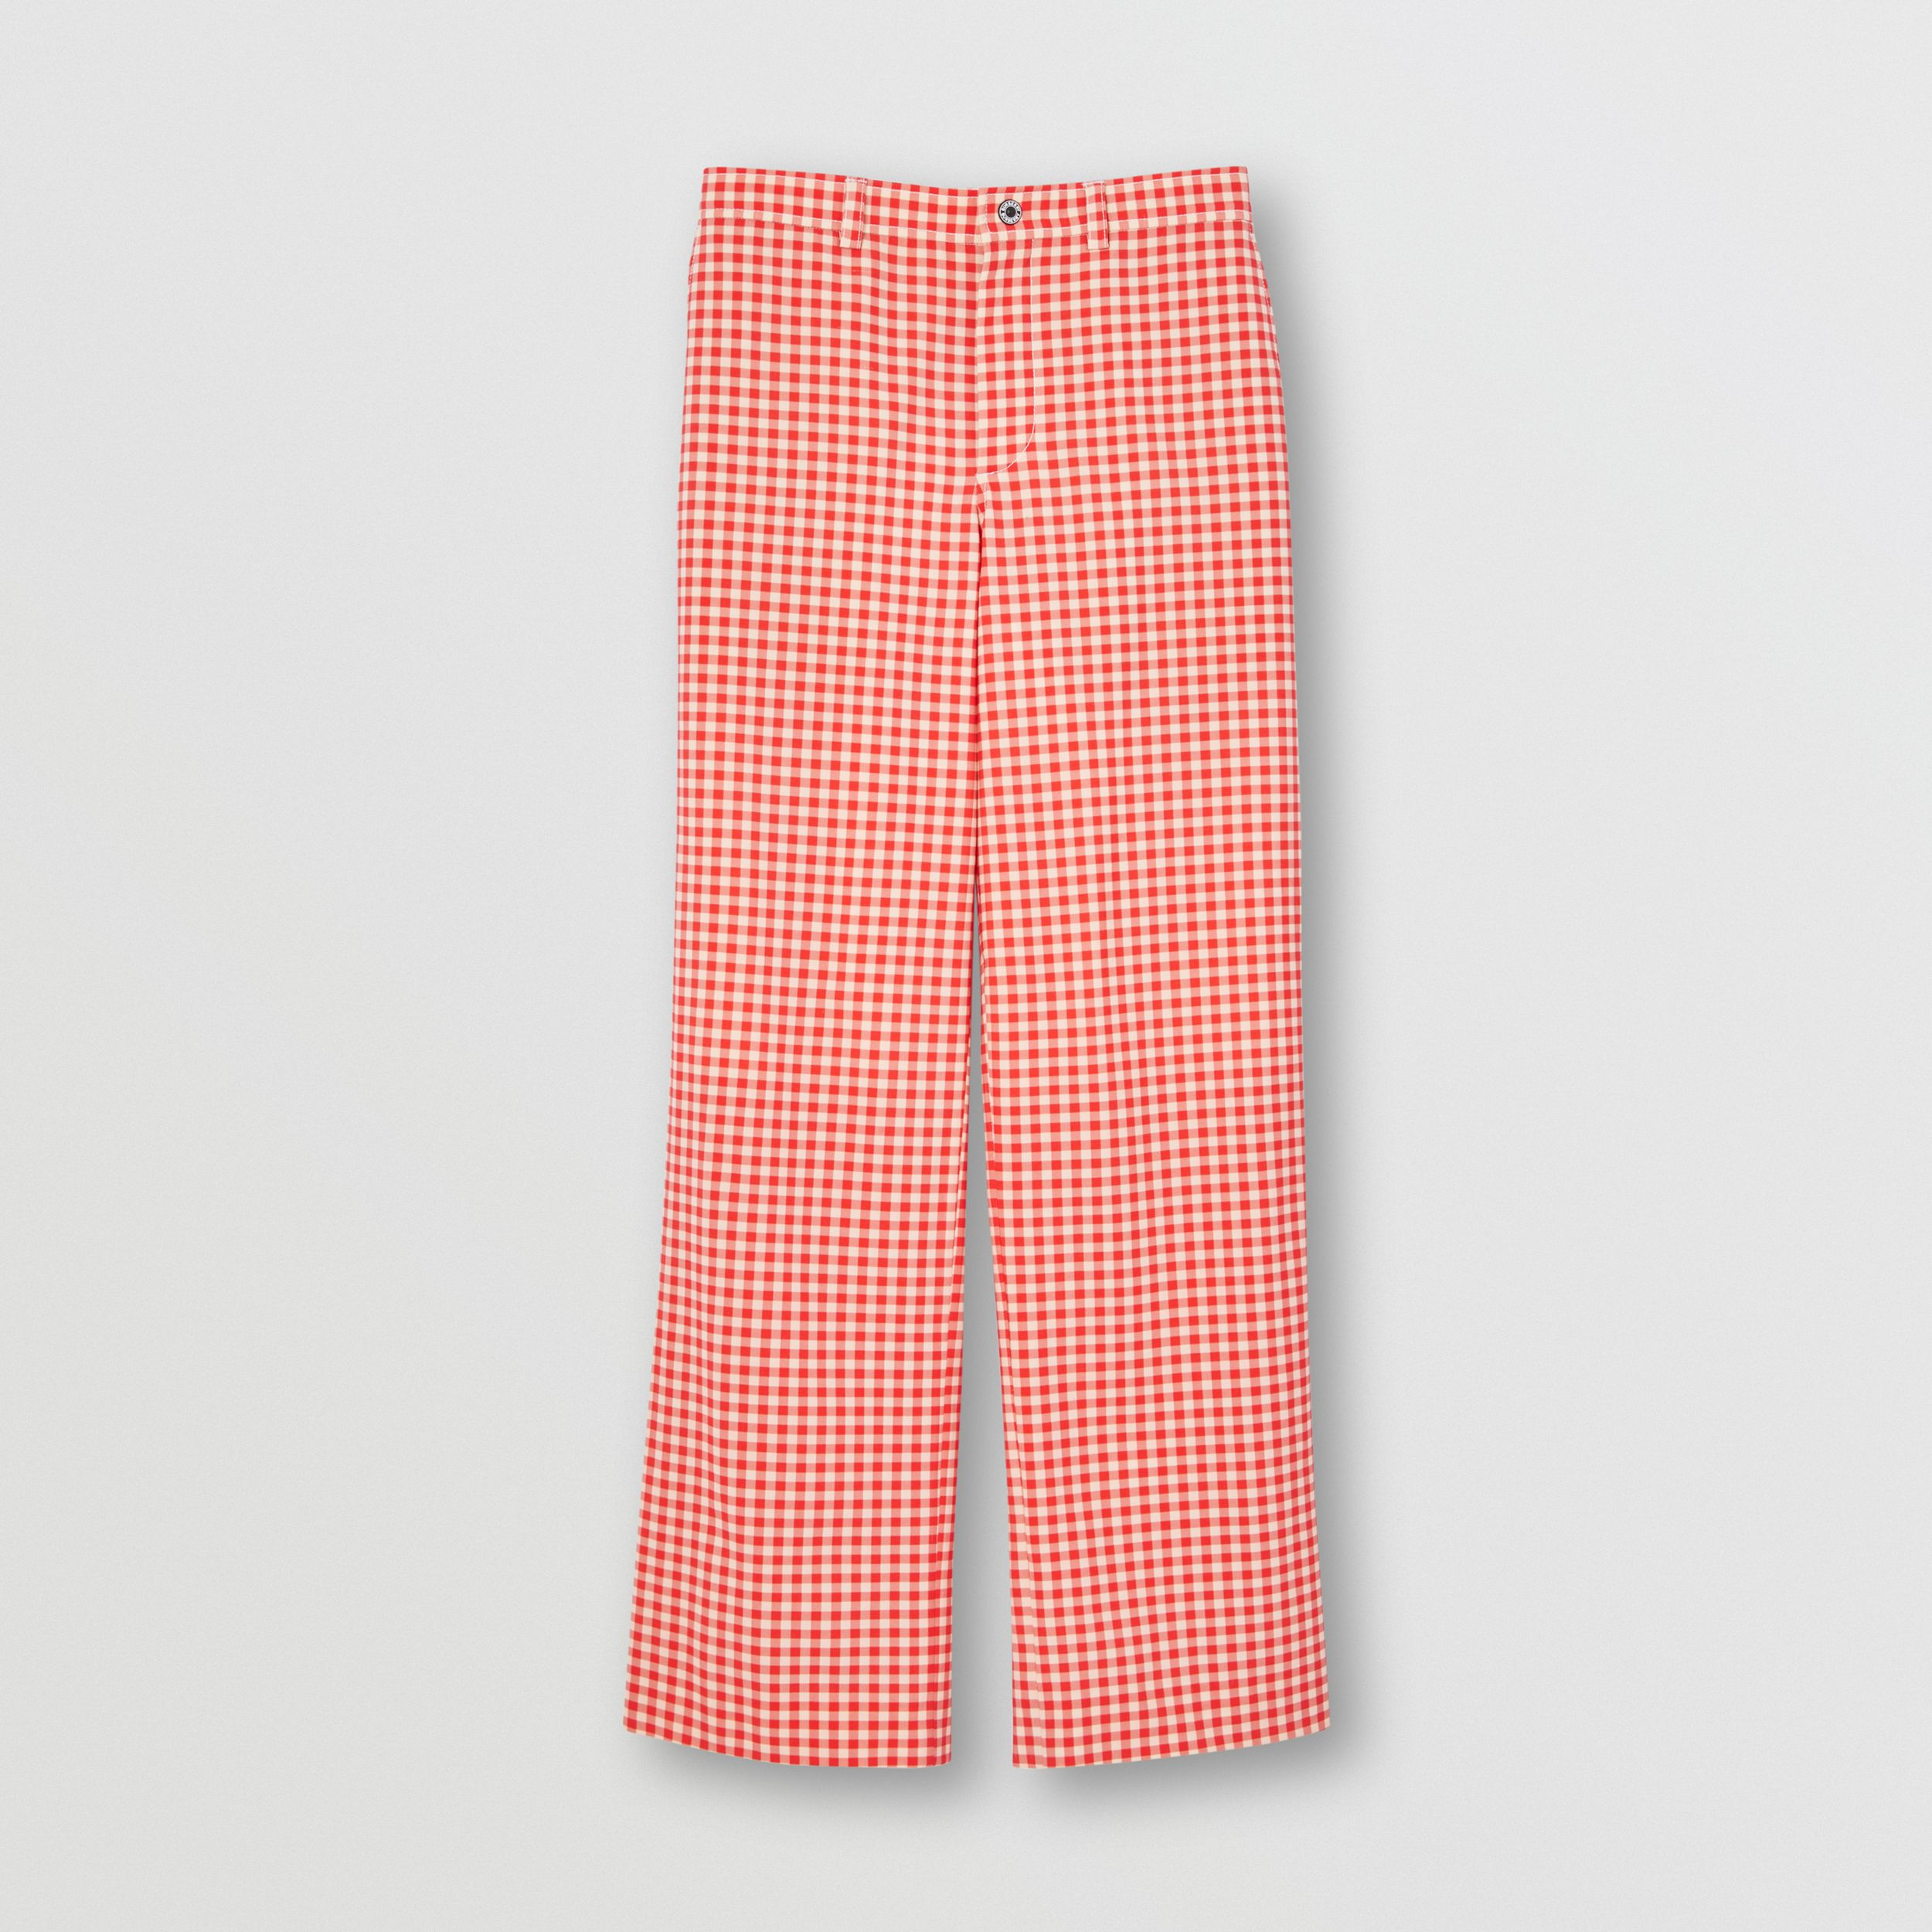 Cut-out Back Gingham Stretch Cotton Trousers in Red - Men | Burberry - 4